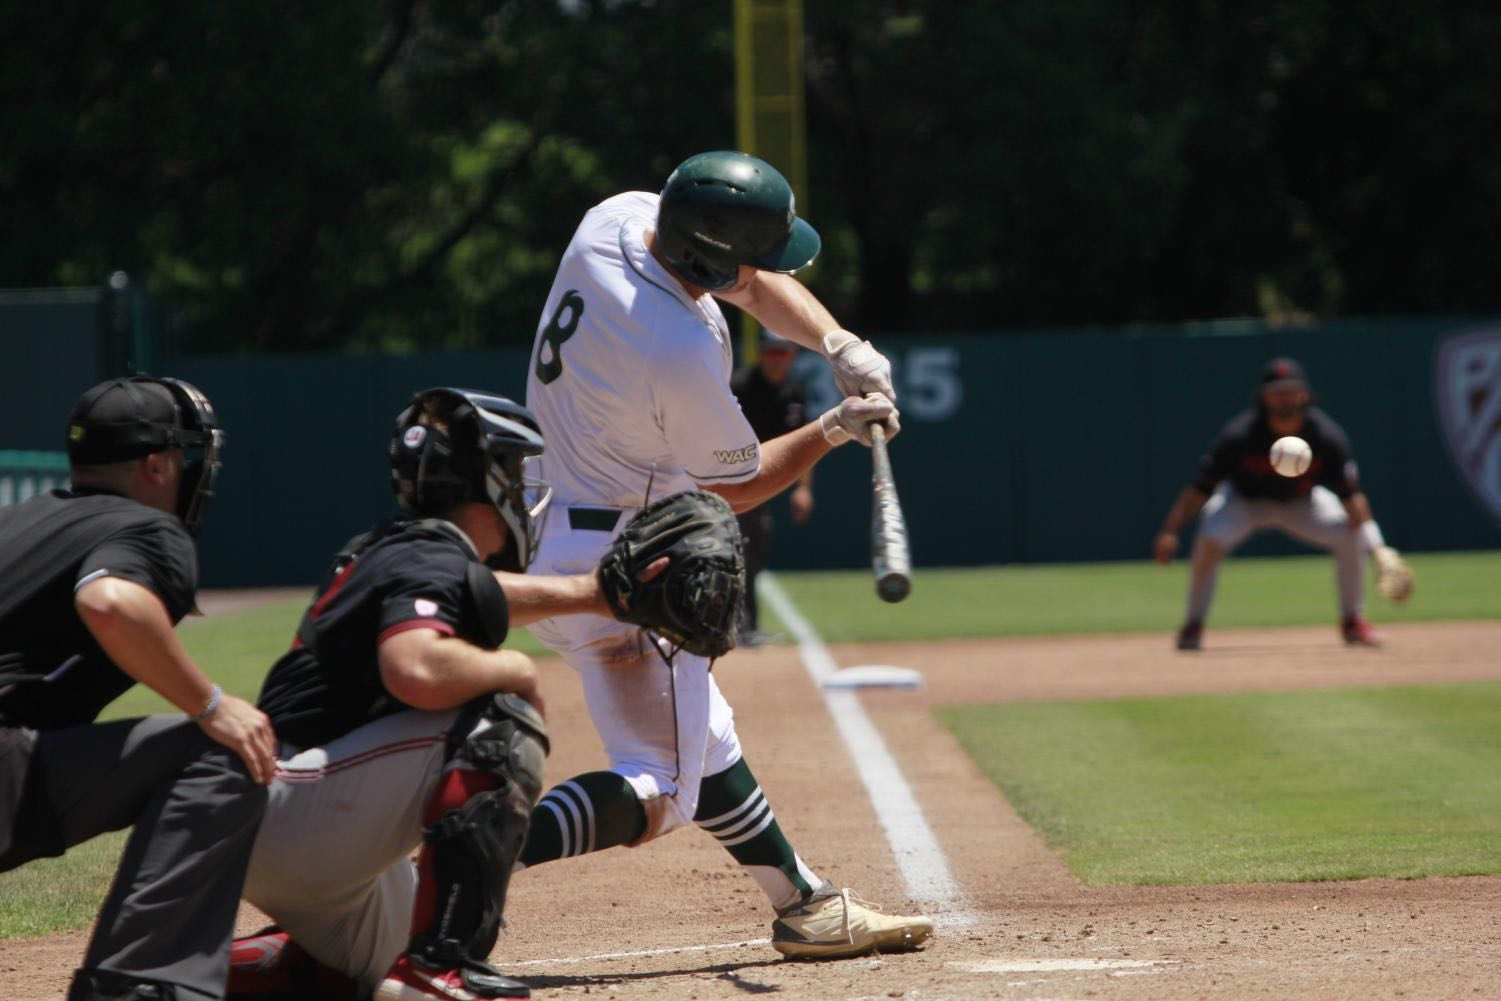 Sac State junior infielder Steven Moretto swings at a pitch against Stanford University on Sunday, June 3, 2019 at Sunken Diamond. The California Legislature recently approved Senate Bill 206 that would allow college athletes to profit off their likeness and is now awaiting a signature from Gov. Gavin Newsom.